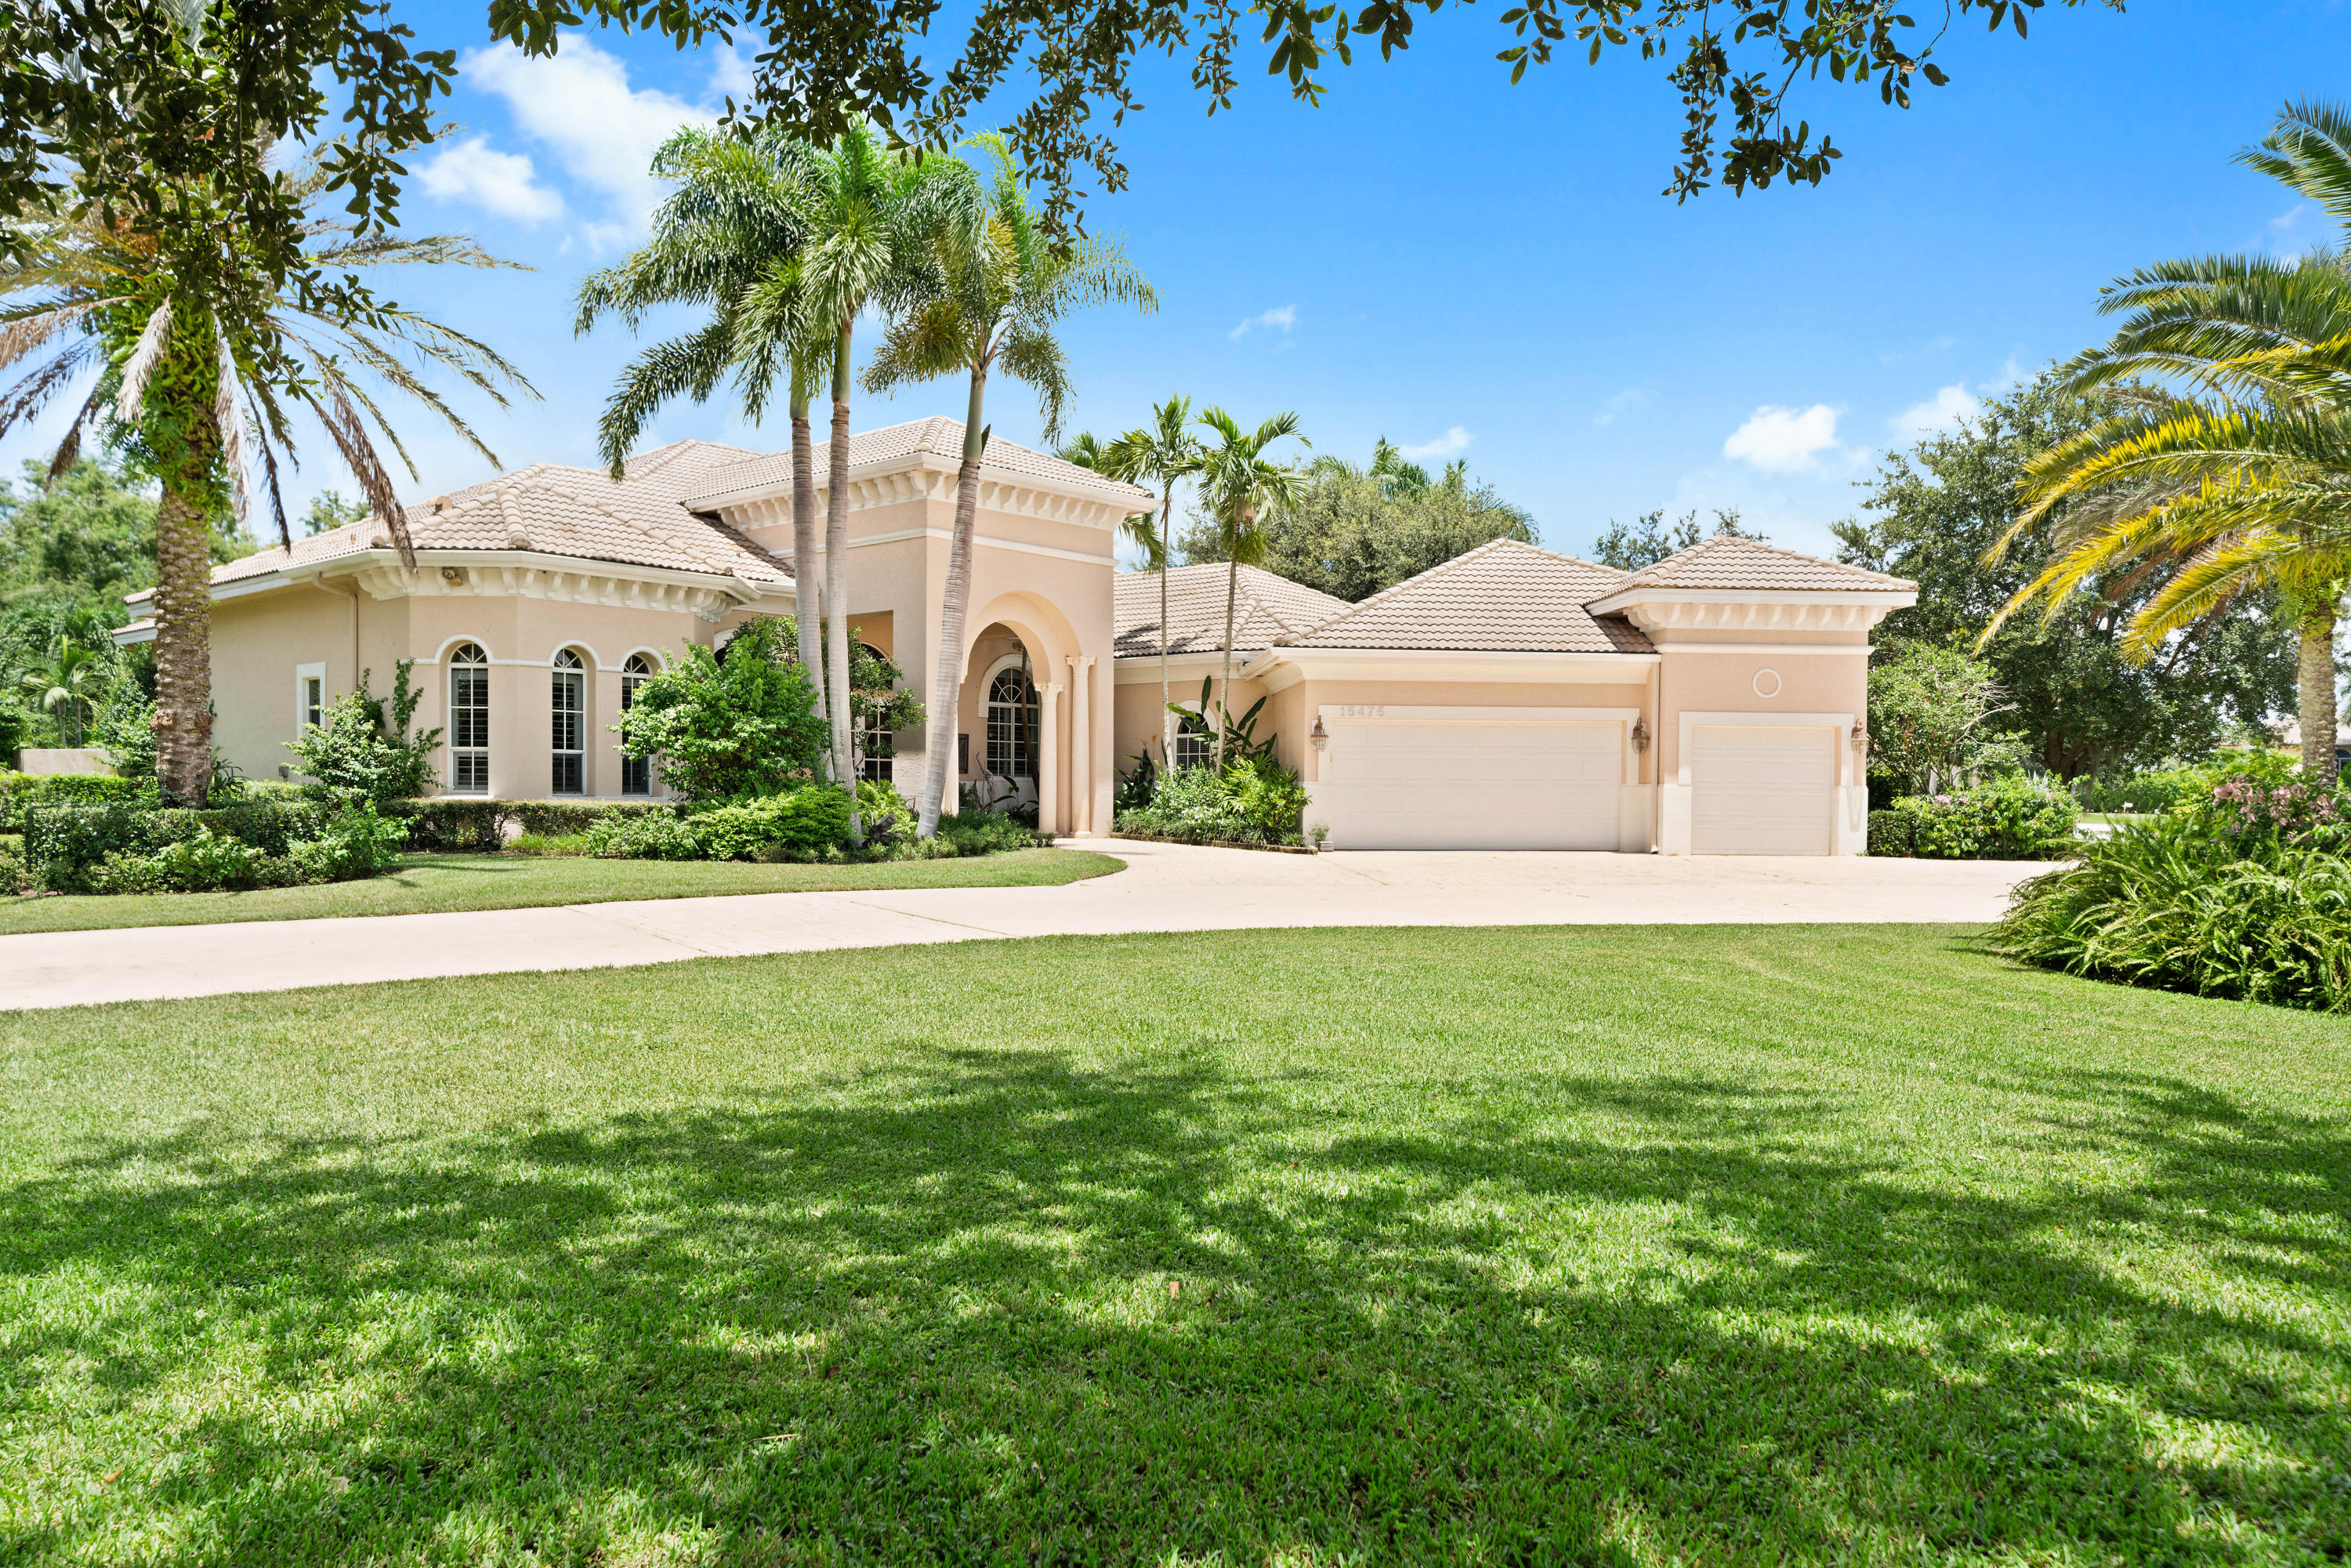 15475 Emmelman Road, Wellington, Florida 33414, 4 Bedrooms Bedrooms, ,4 BathroomsBathrooms,Single Family,For Sale,Aero Club,Emmelman,RX-10455897